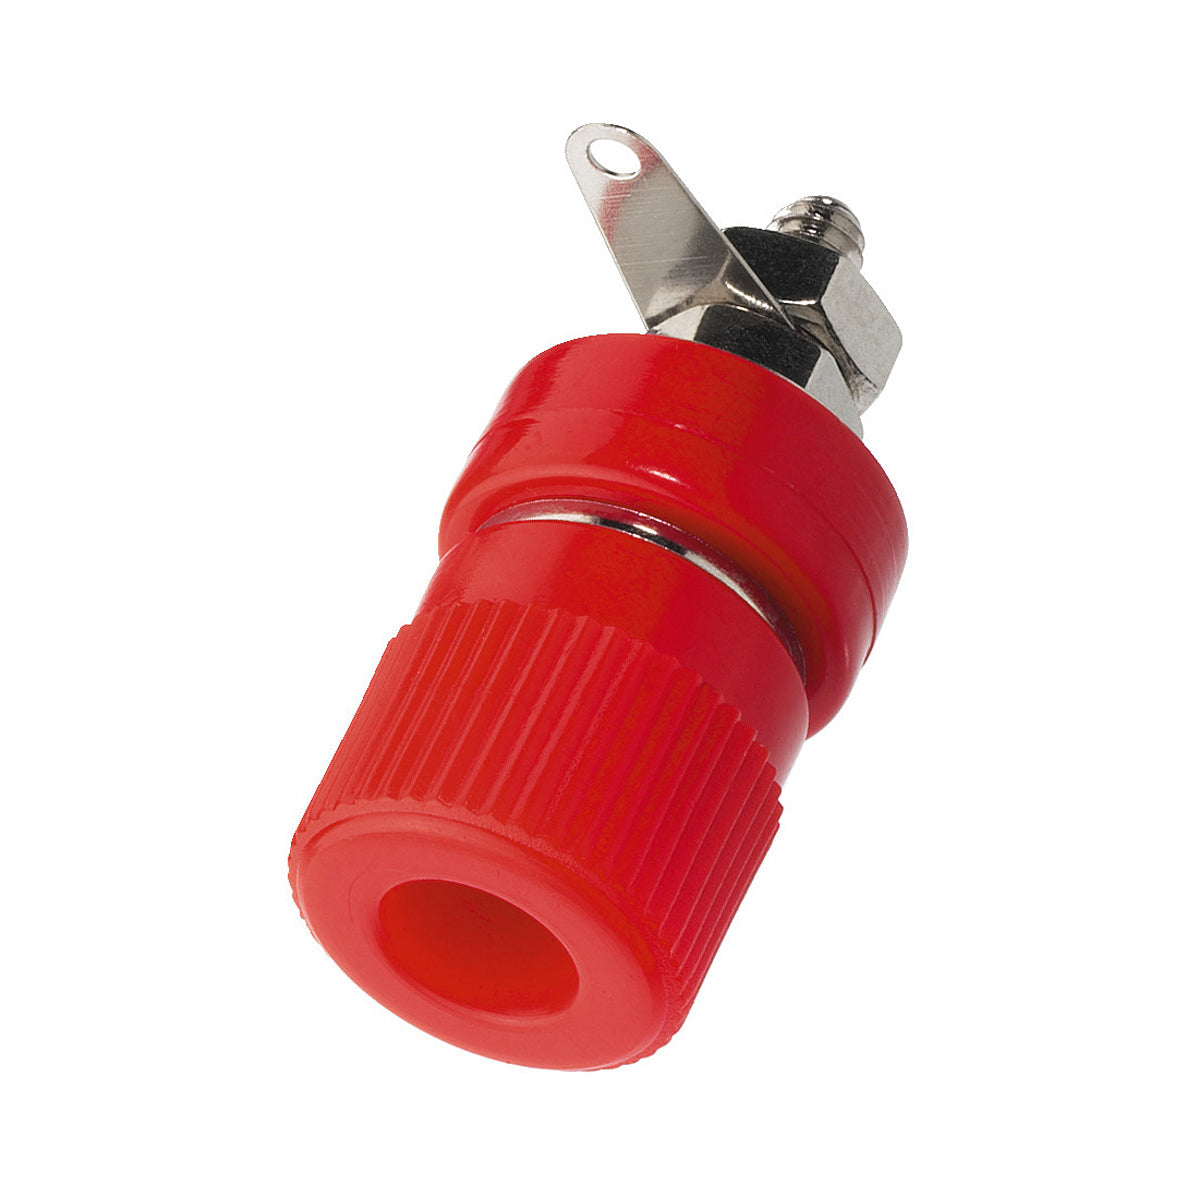 Monacor BP-360 Binding Posts - Red